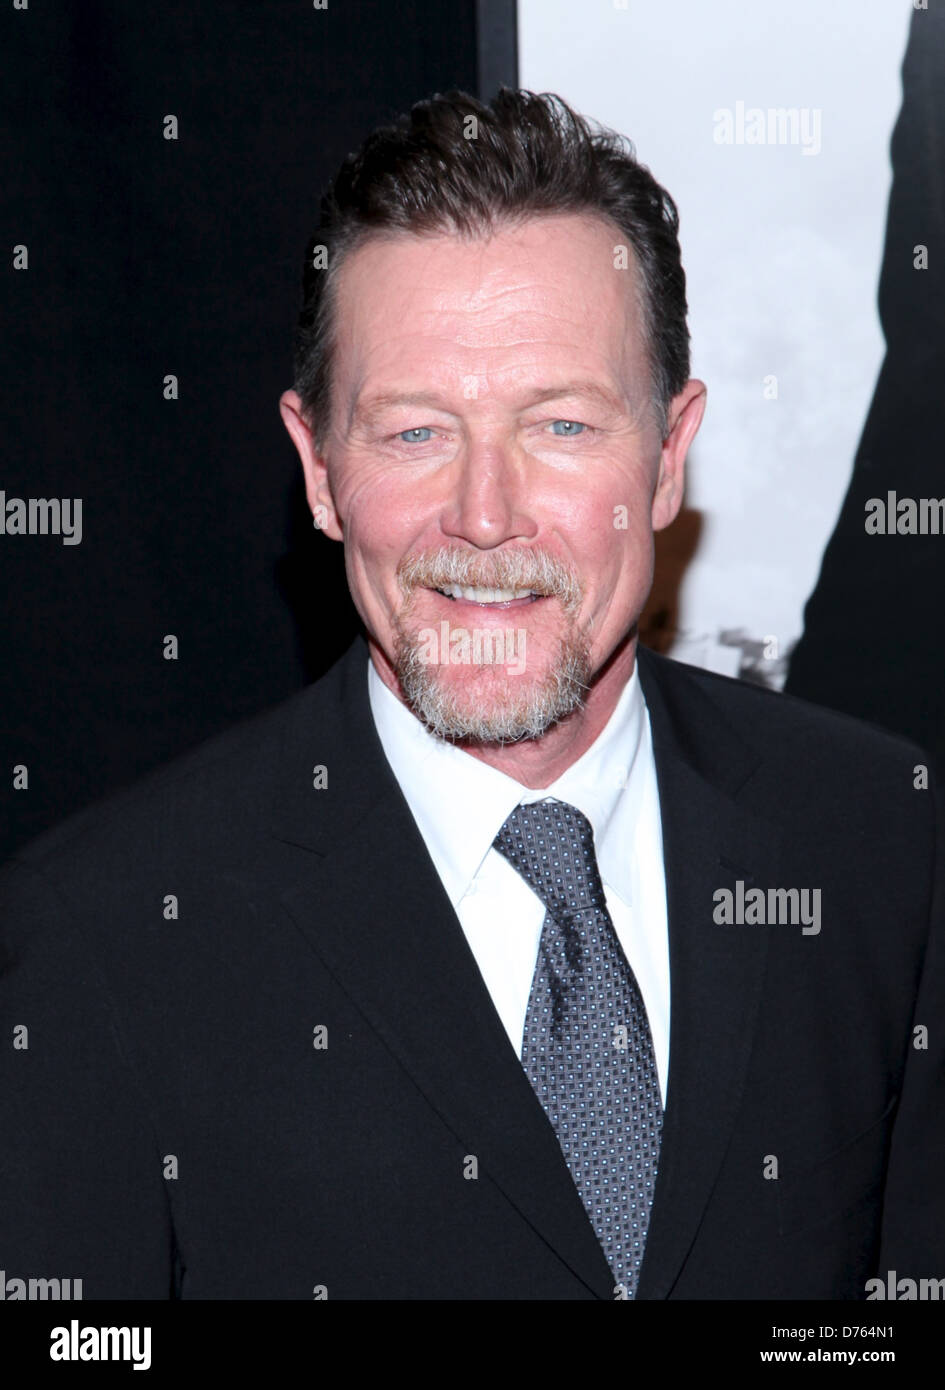 Robert Patrick New York Premiere of 'Safe House' held at the SVA Theater - Arrivals New York City, USA  - Stock Image